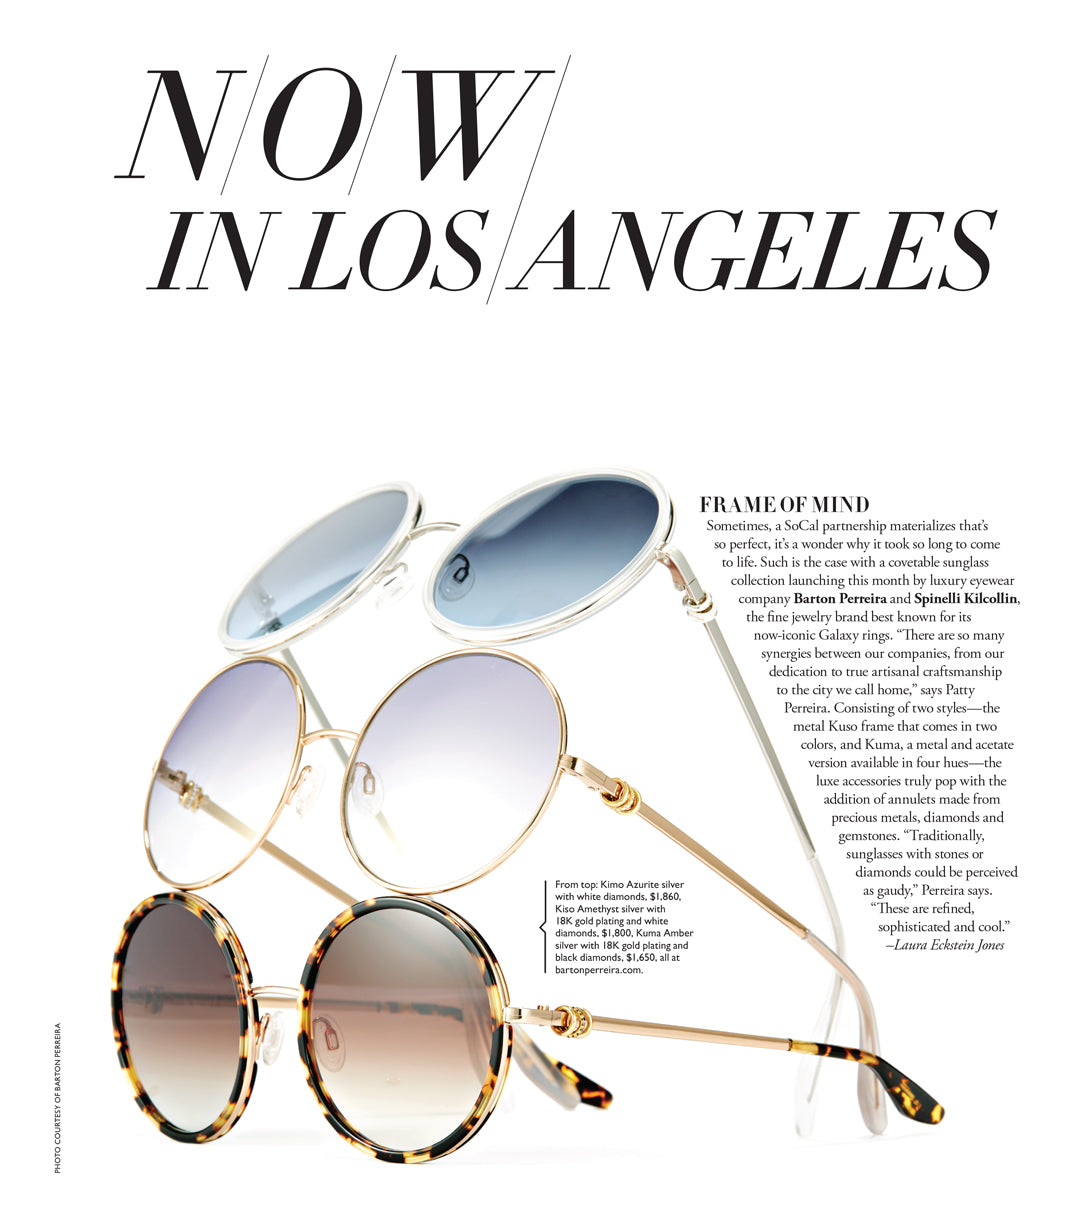 Spinelli Kilcollin X Barton Perreira collaboration sunglasses luxury los angeles